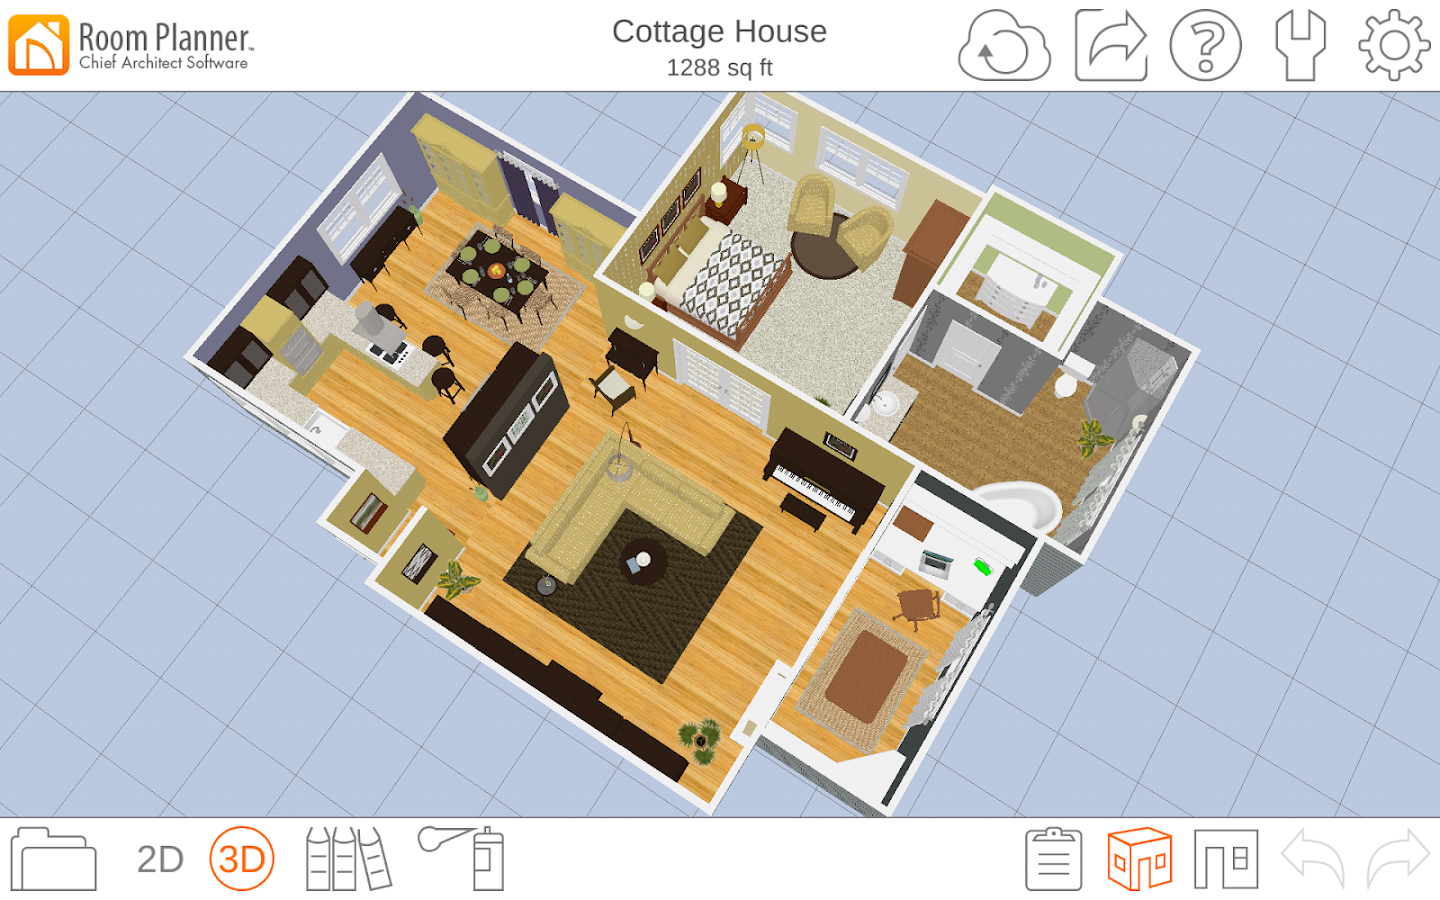 Room planner home design android apps on google play Plan your room layout free